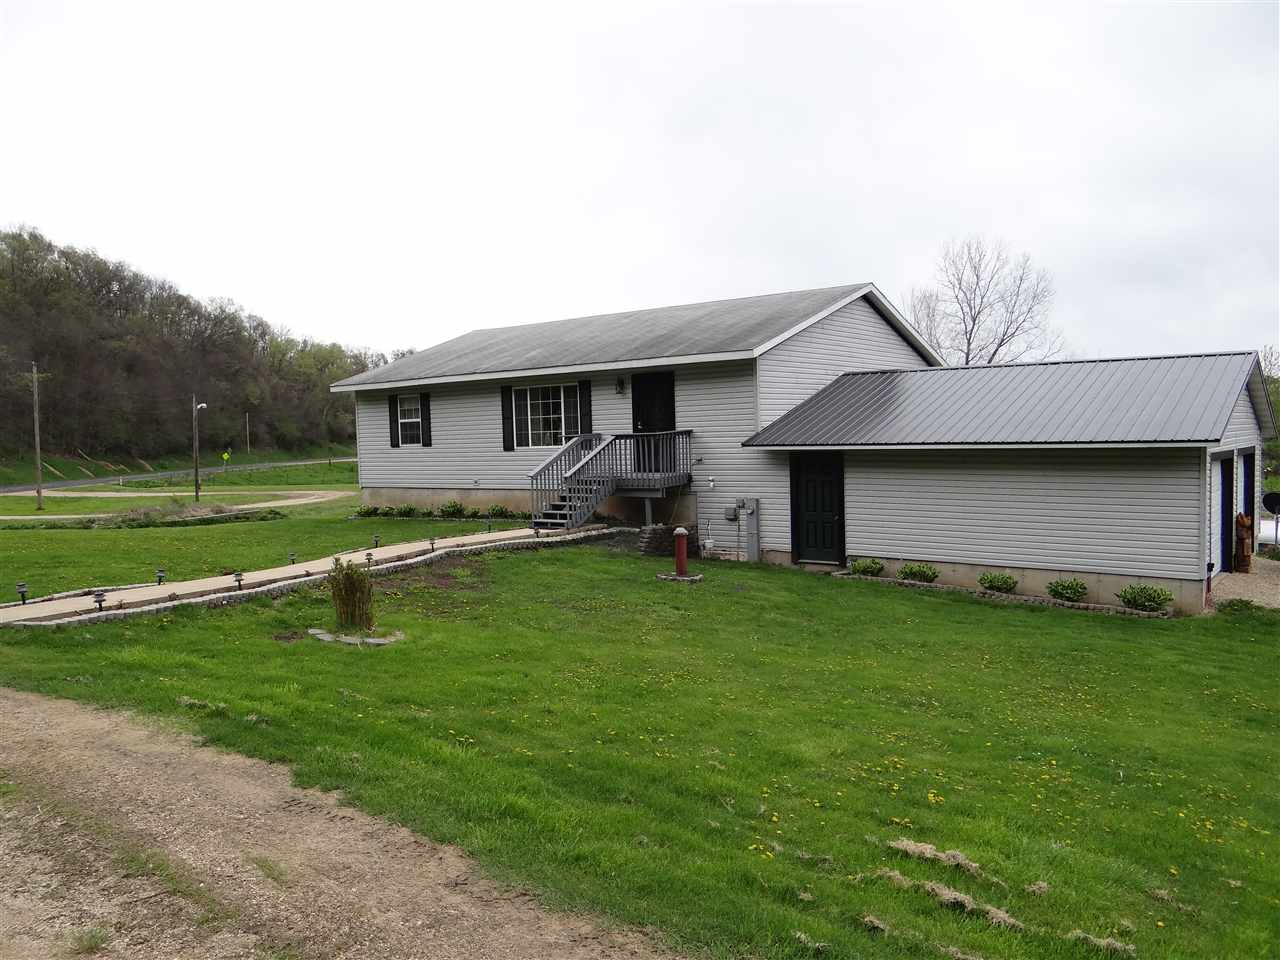 9995 COUNTY ROAD A, Bloomington, WI 53804